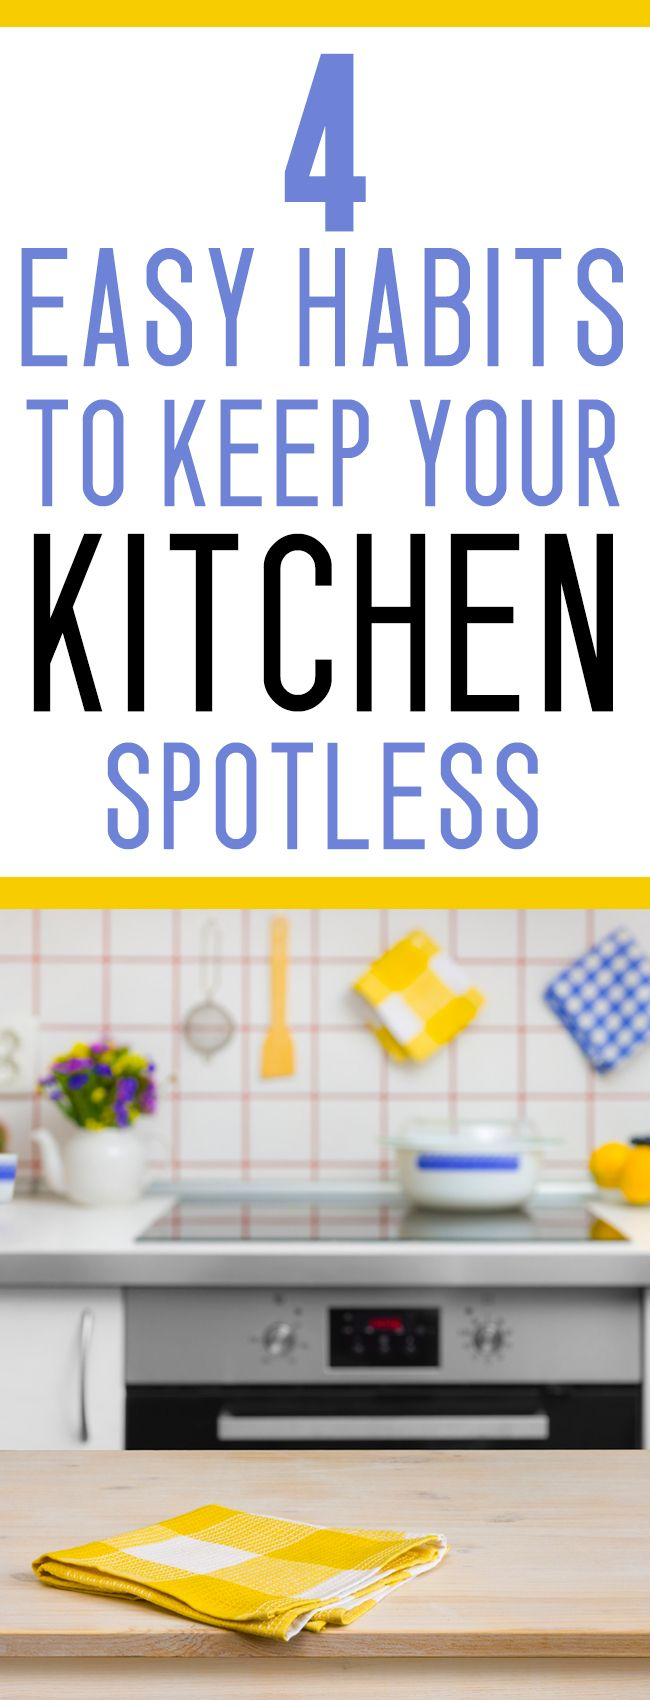 446 Best Images About Household Tips Tools On Pinterest